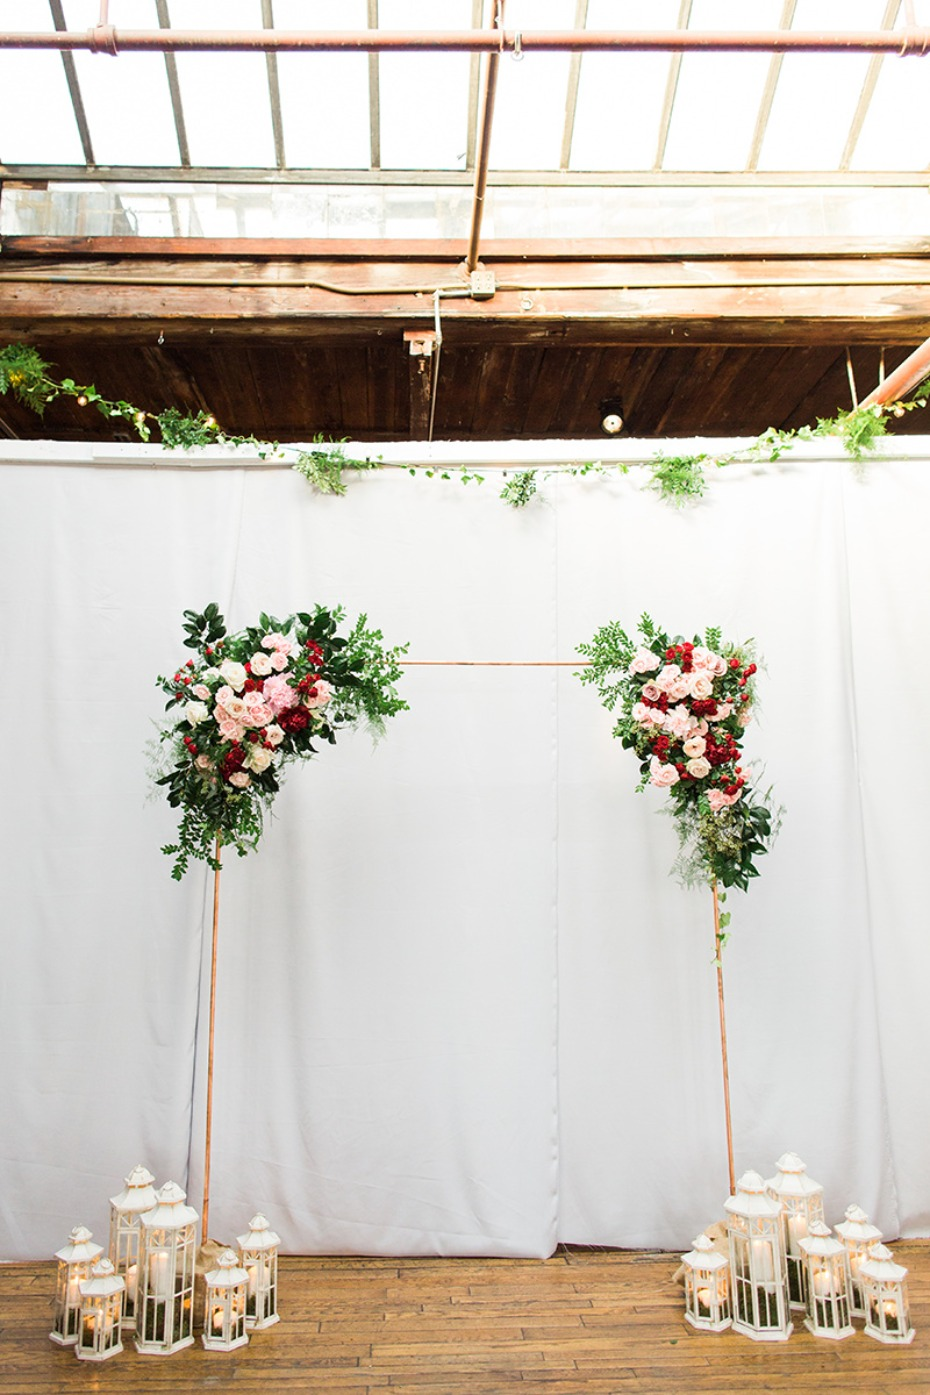 industrial vintage chic wedding backdrop